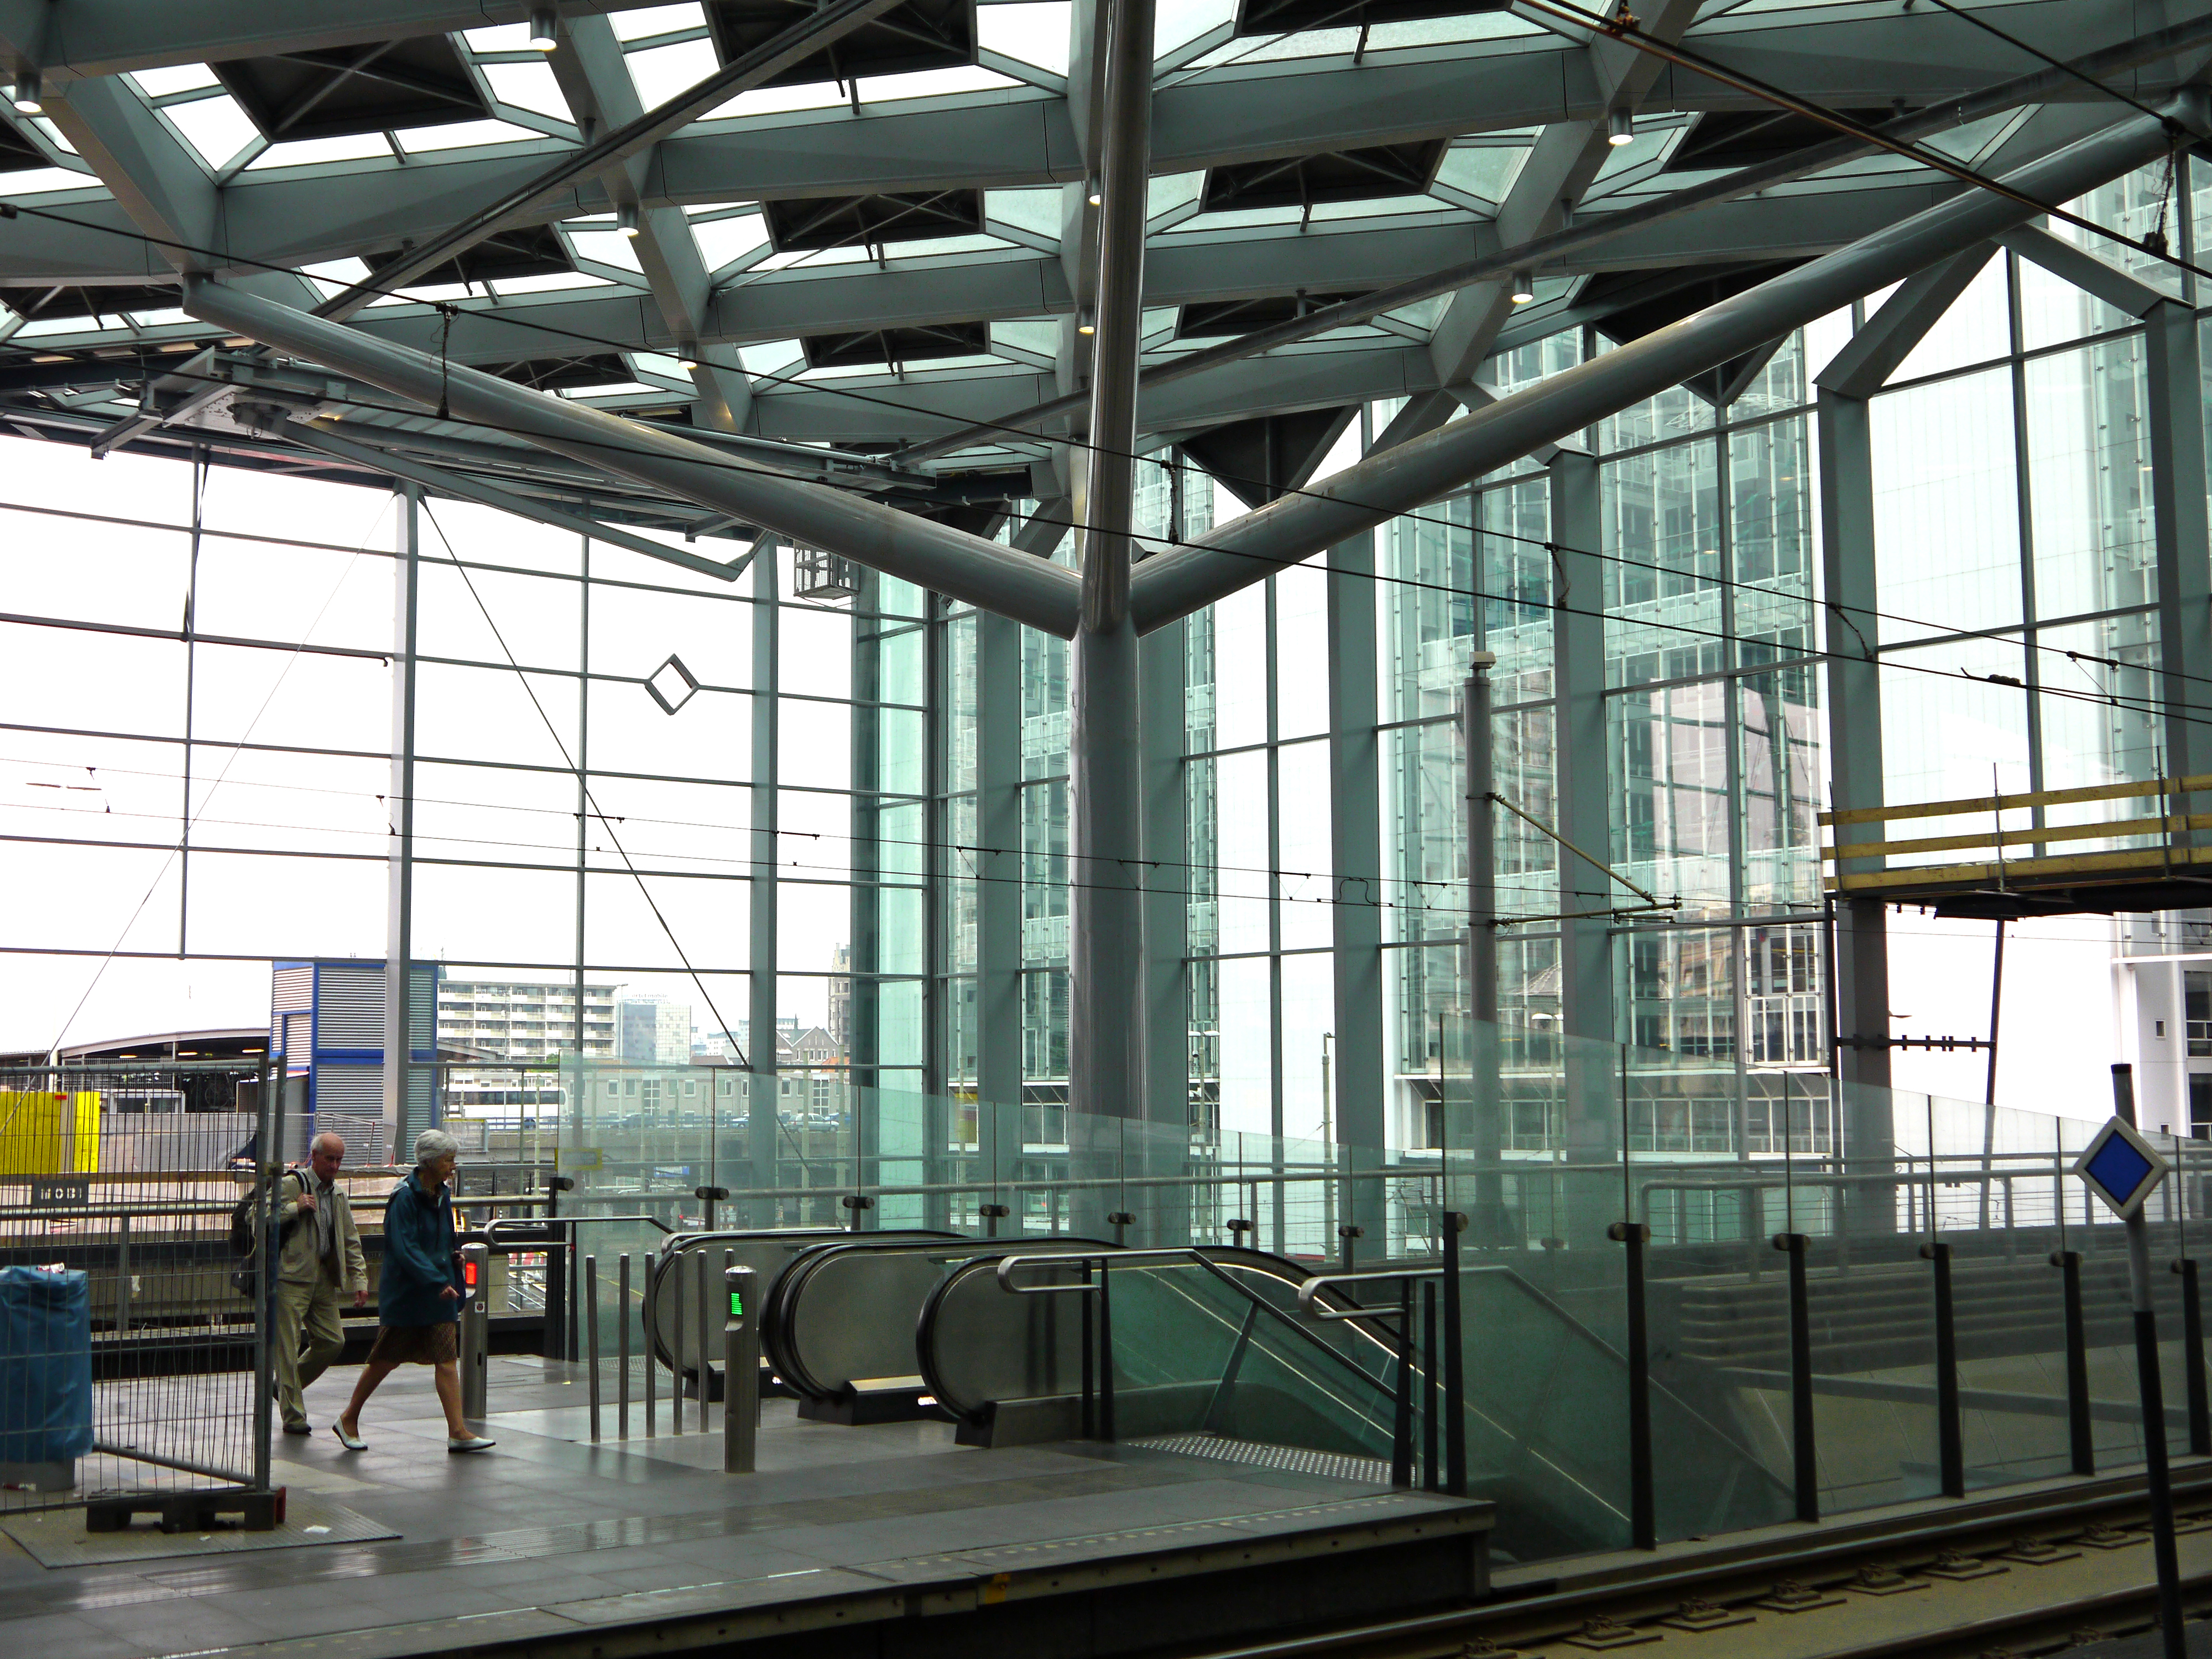 file:photo of new transparent roof and glass walls of central